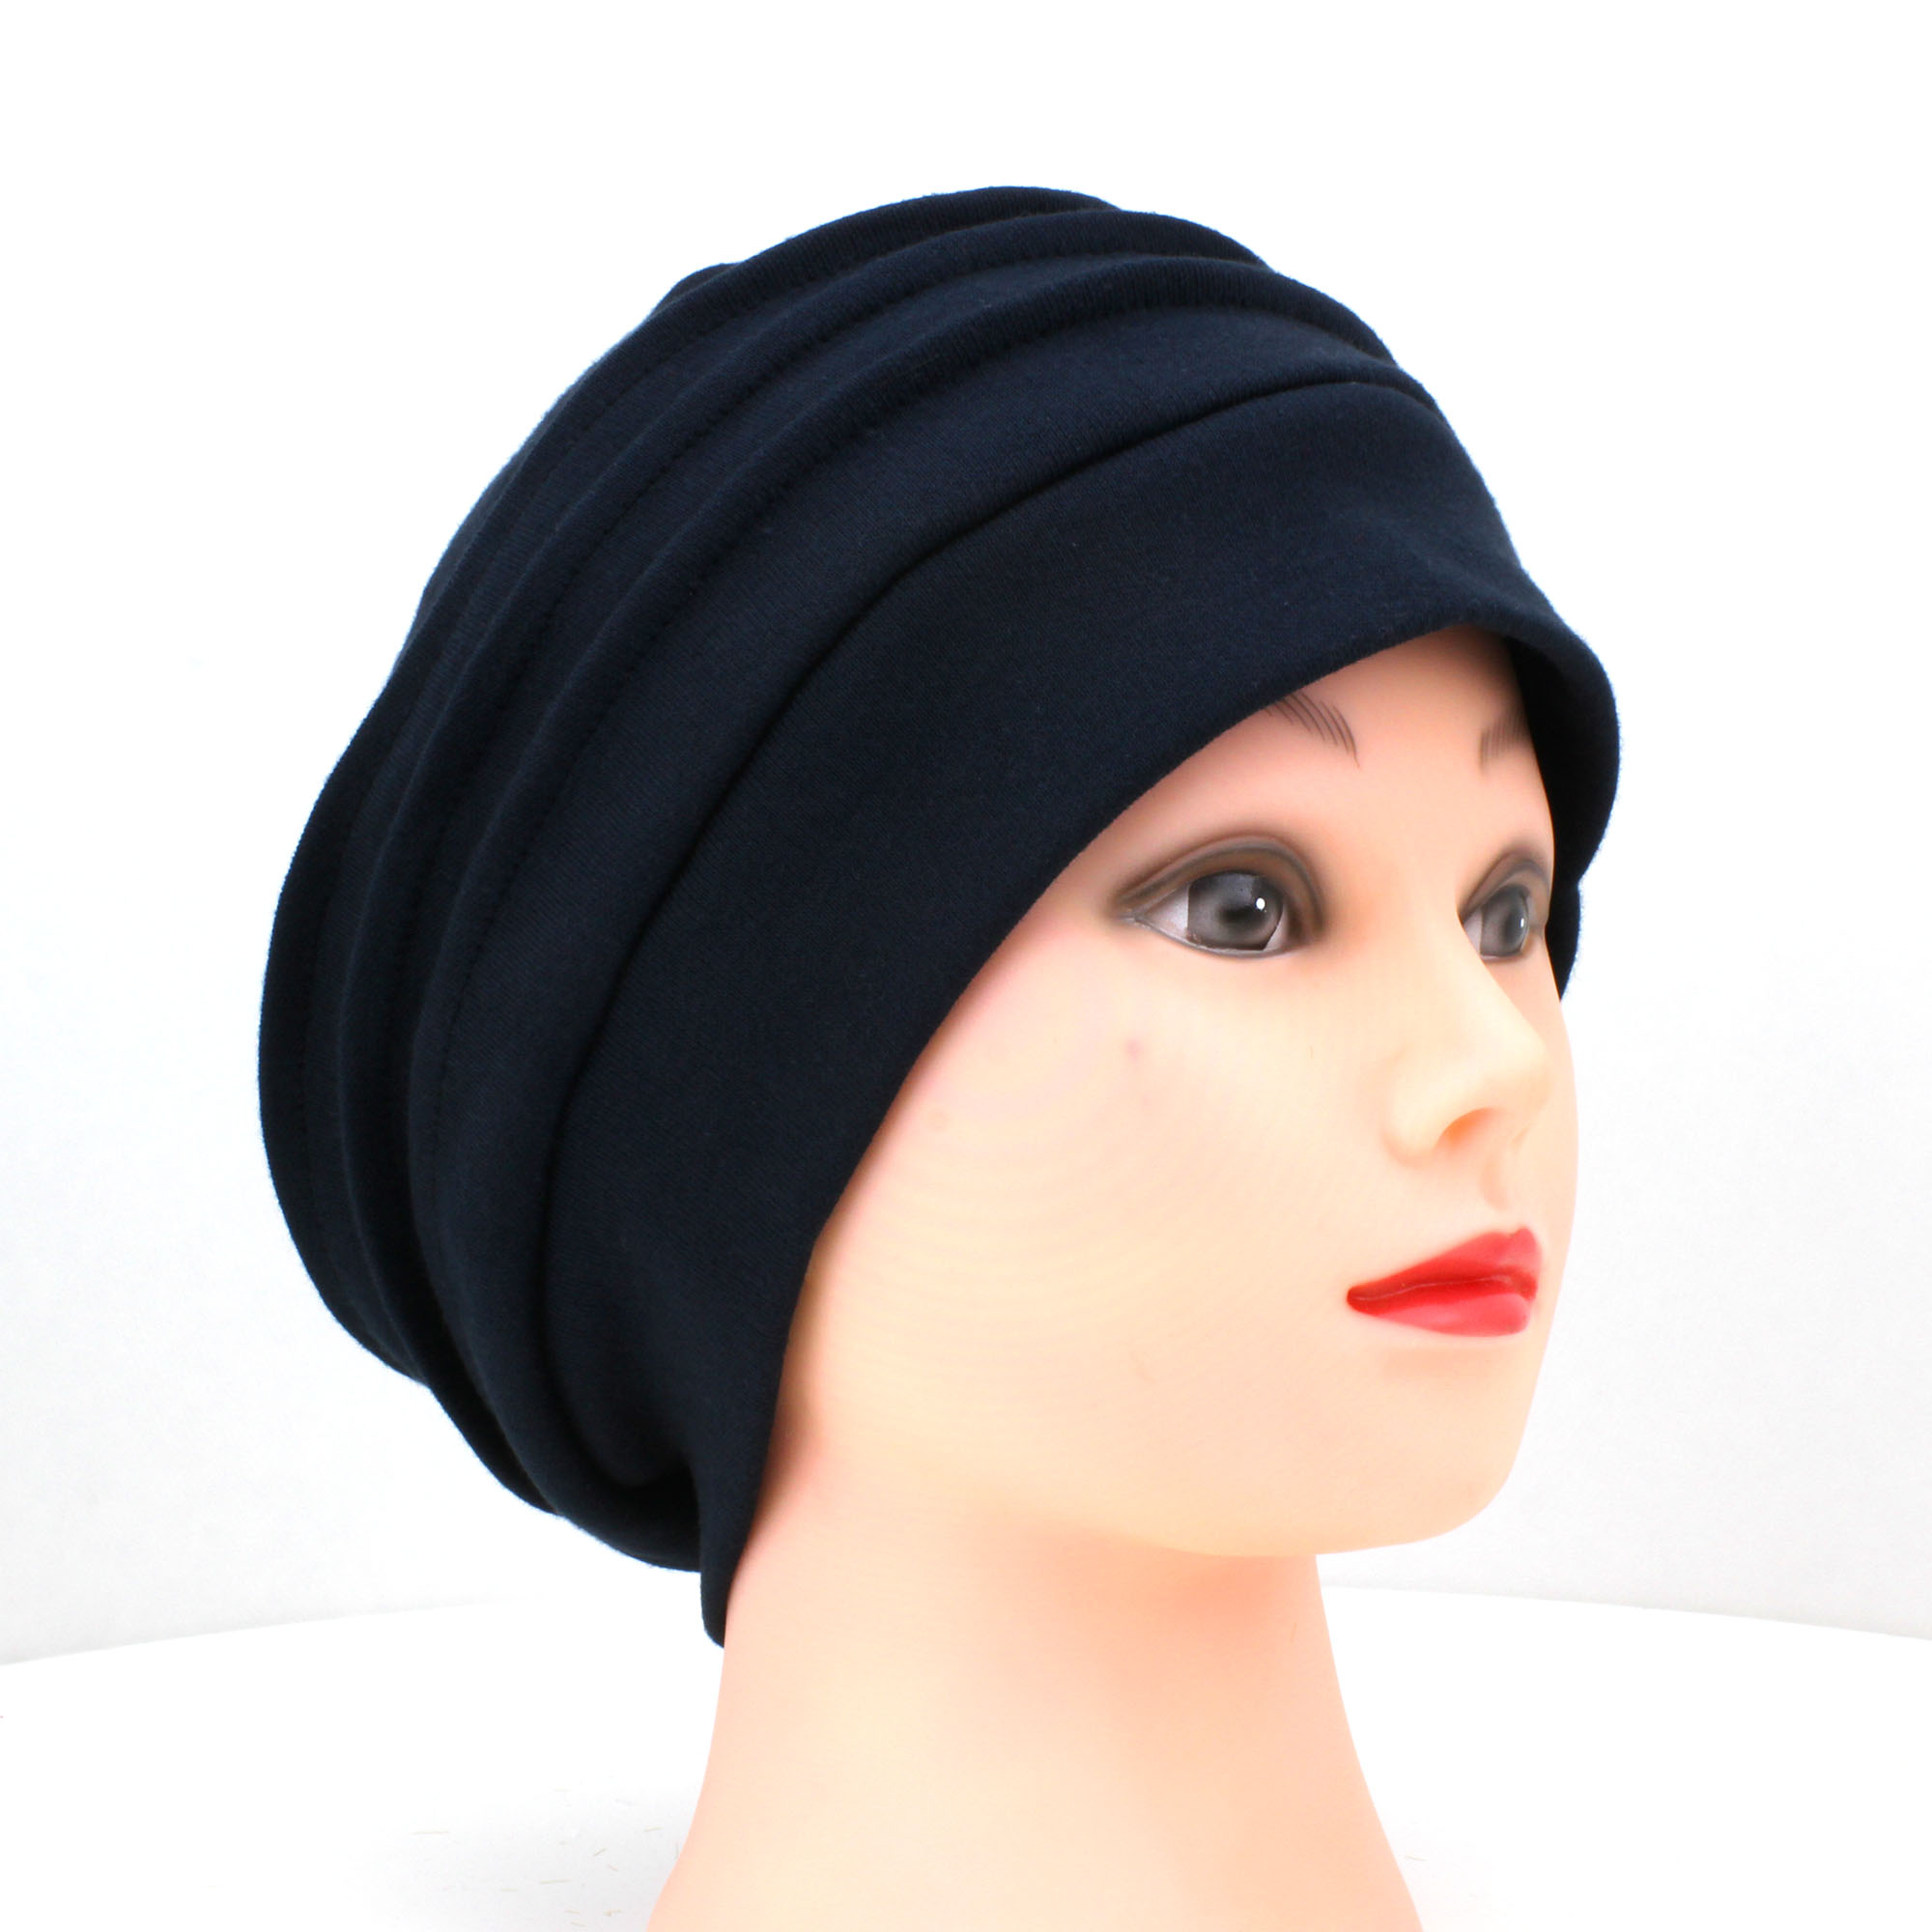 39cef8d9a70 ... cheapest holdem slouchy turban hat chemo cap for cancer patients  comfort luxury design ultra durable soft ...